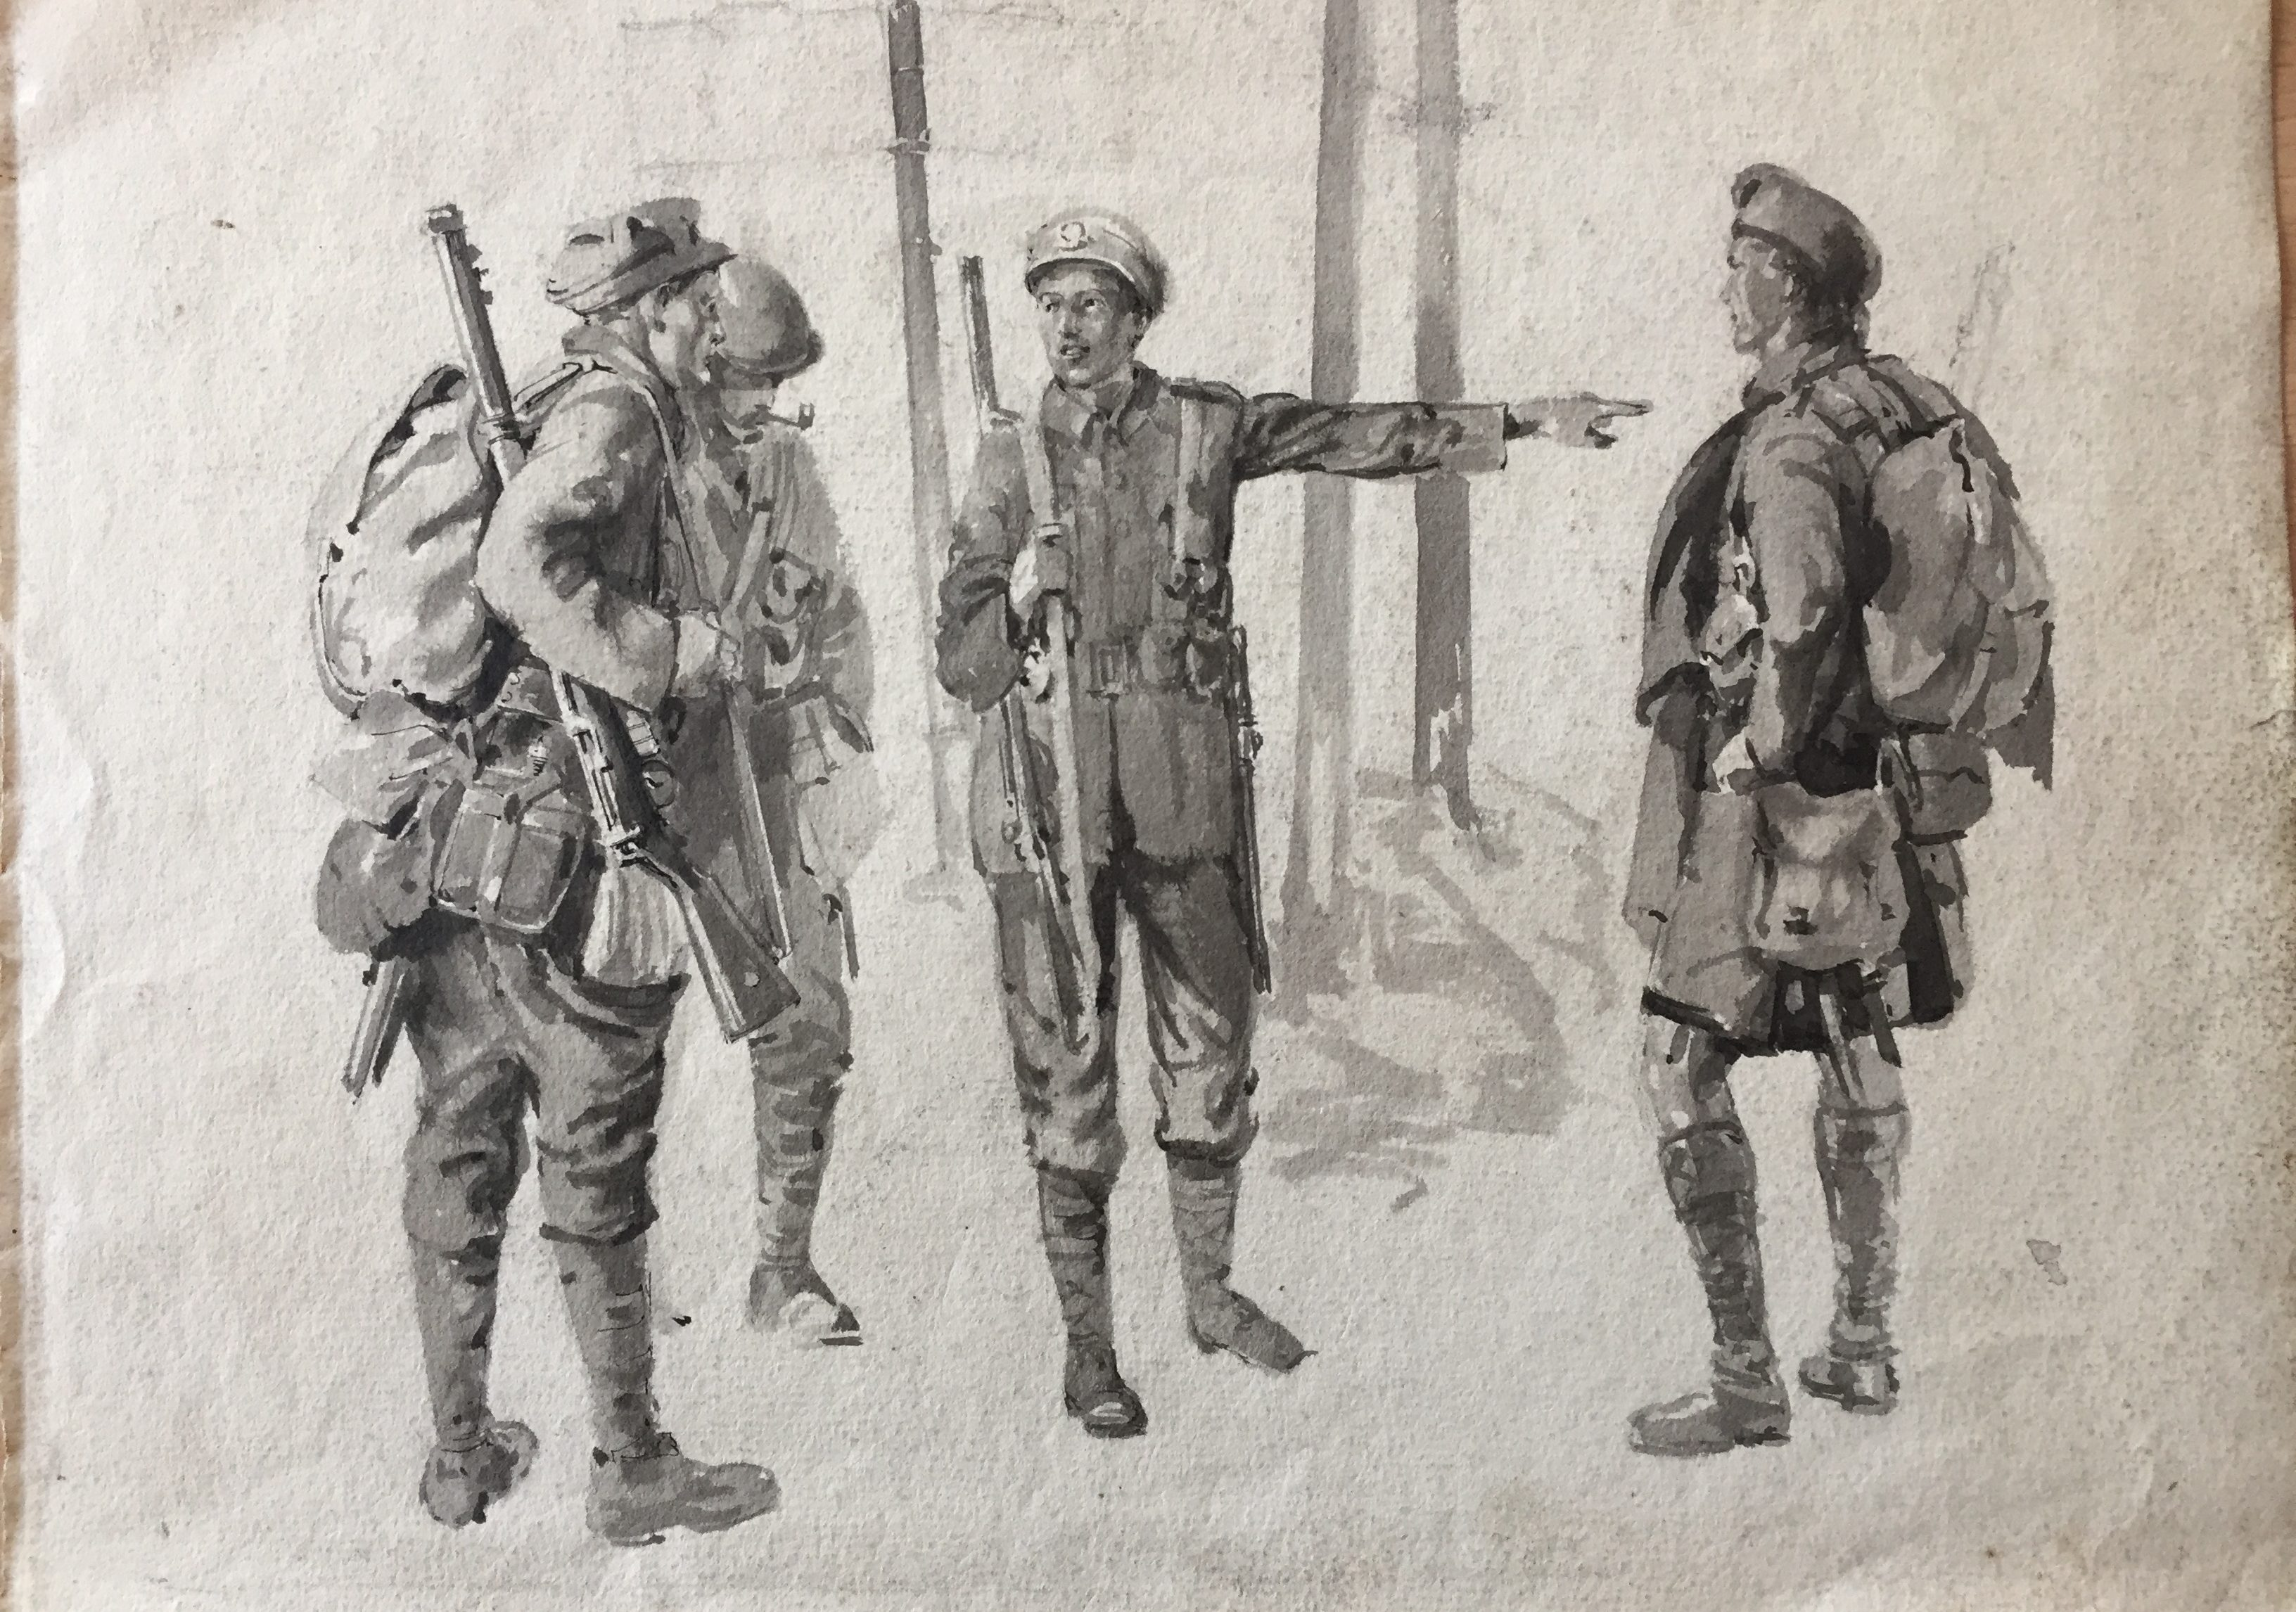 Old image of soldiers of the Great War